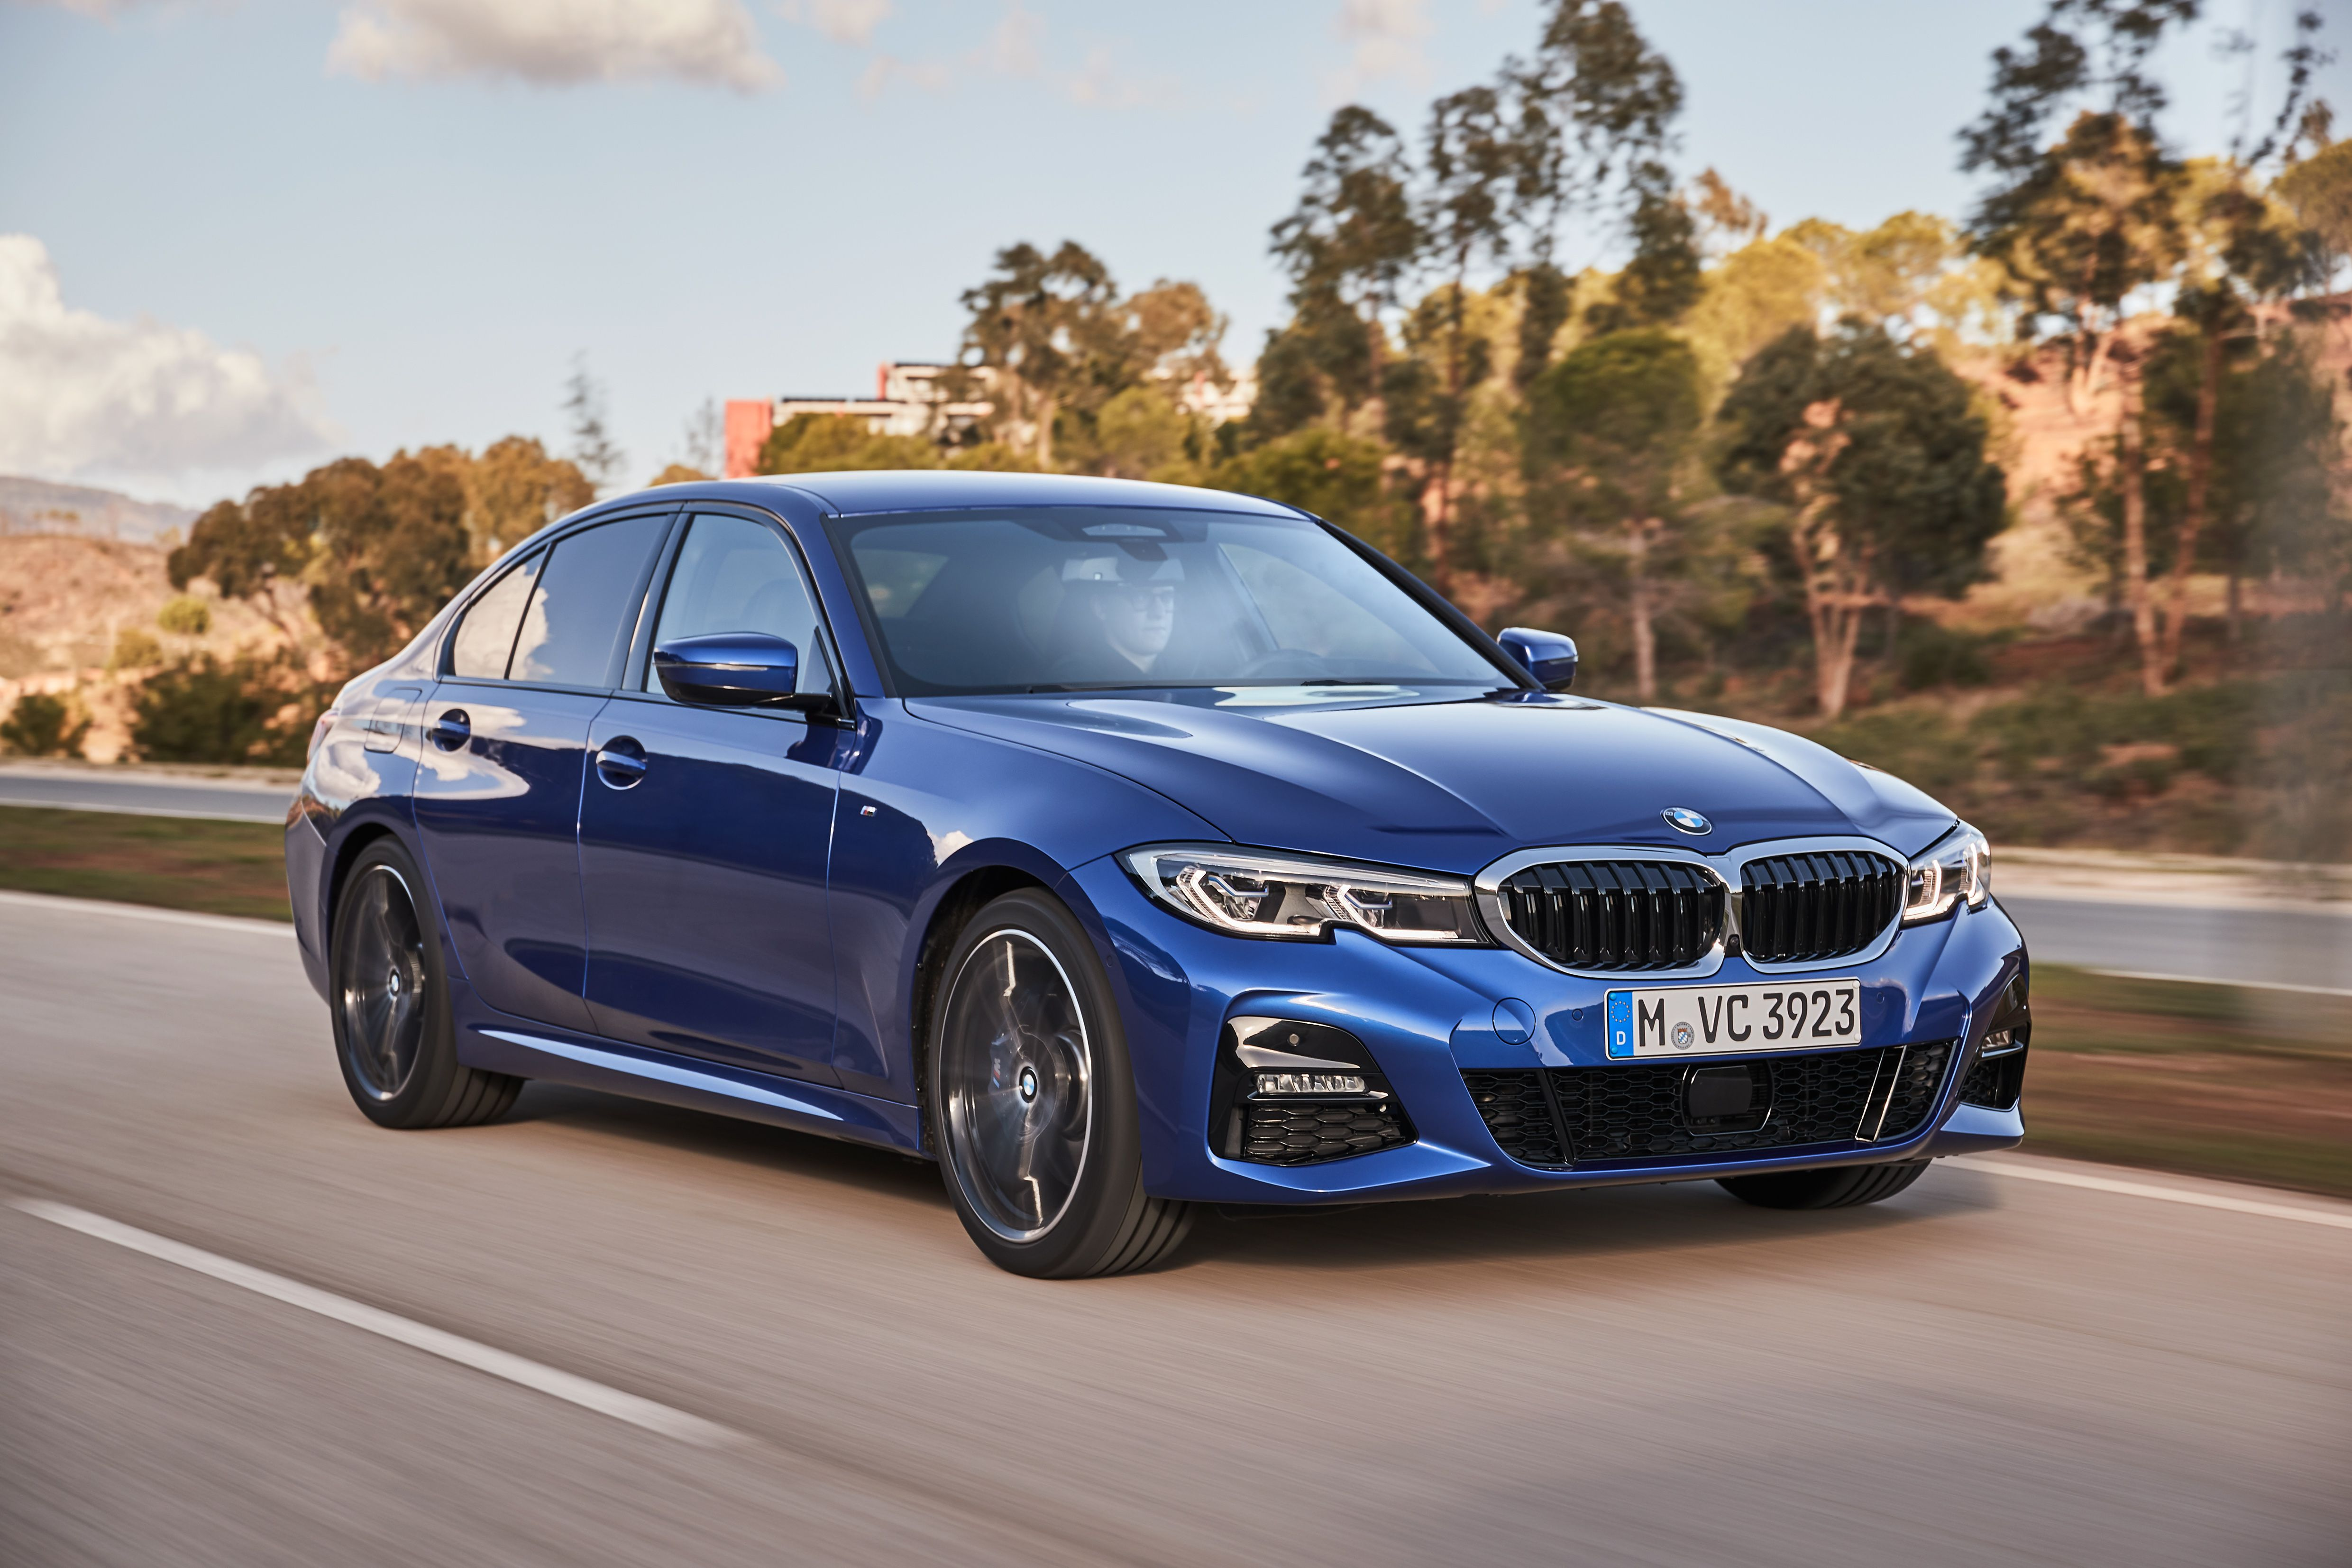 Bmw Debuts The 7th Generation Of The 3 Series Click To Find Out More Bmw Series Bmw 3 Series New Bmw